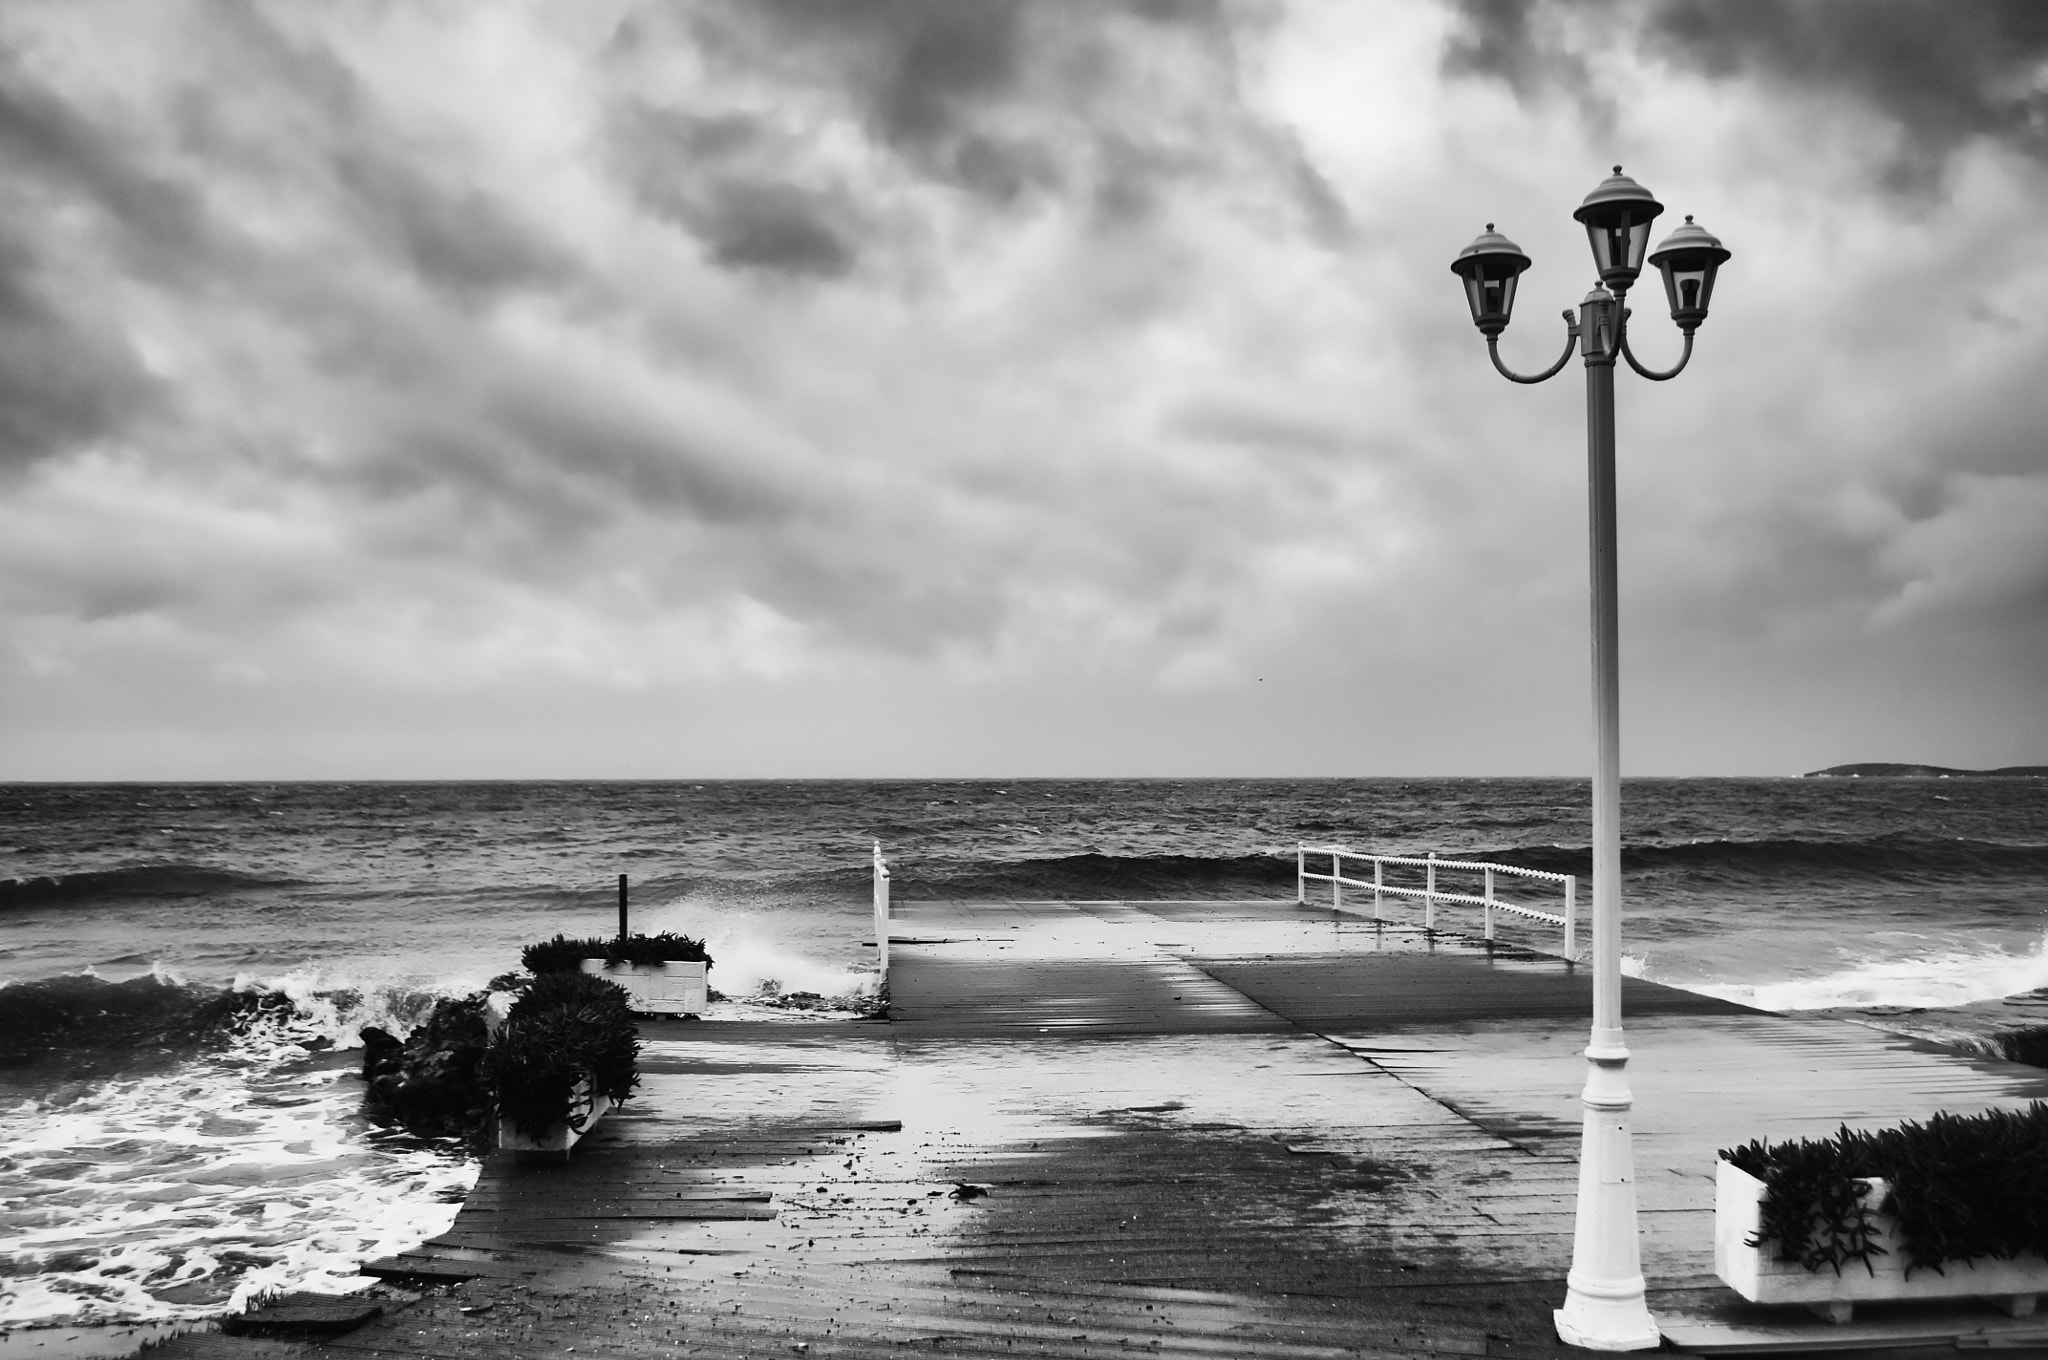 Photograph The Storm by Yulia R on 500px